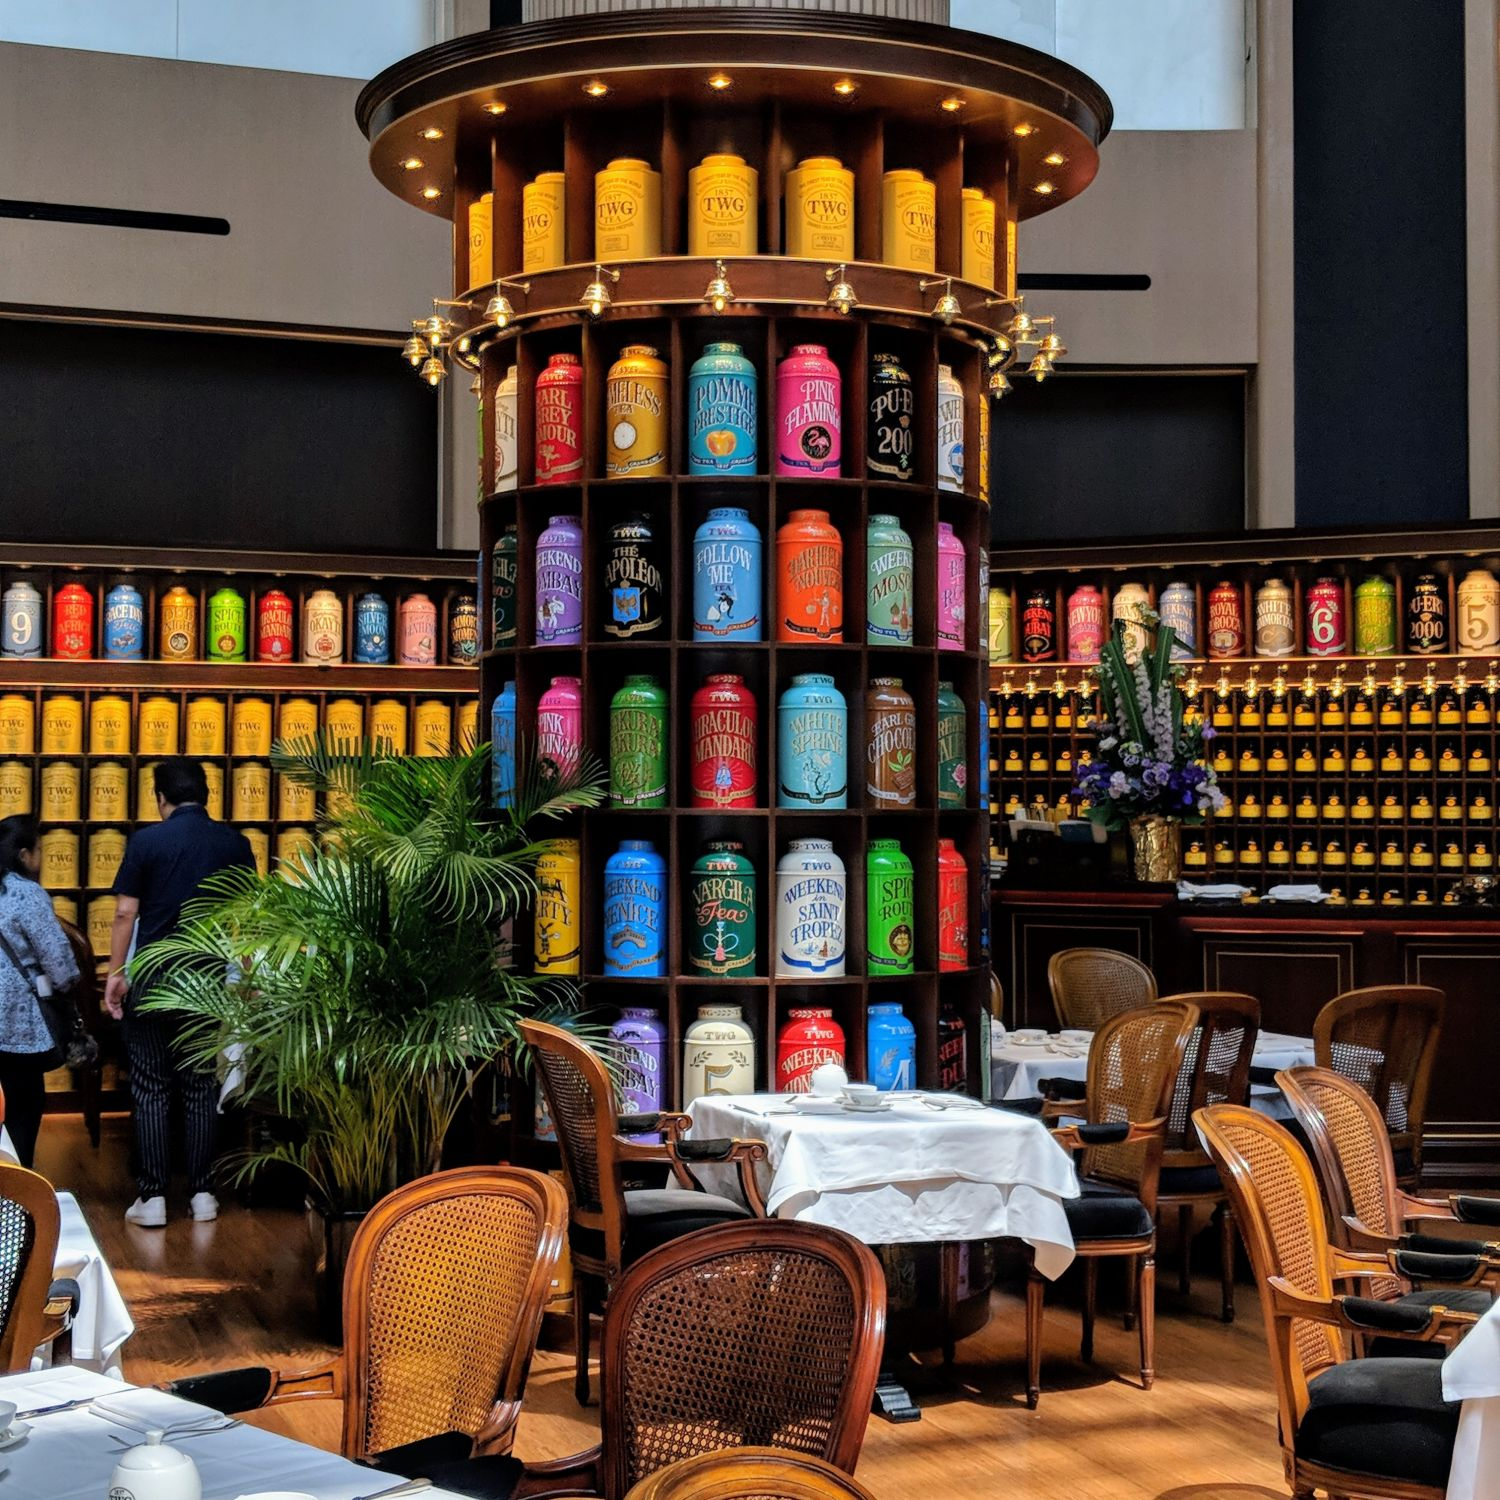 swissotel the stamford TWG Tea Salon Boutique